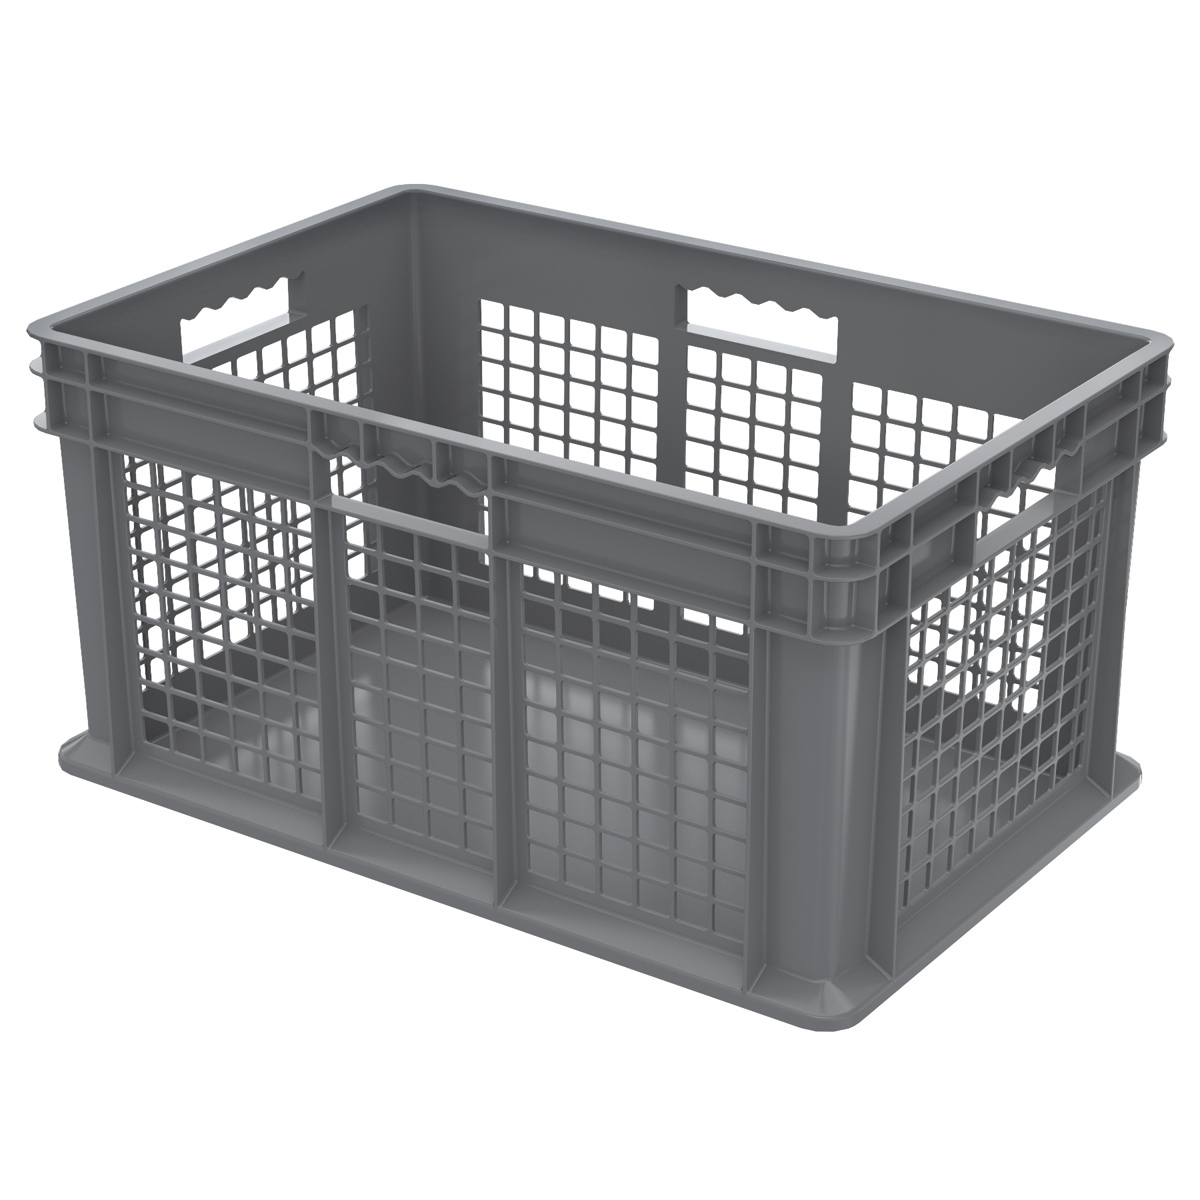 Straight Wall Container, Mesh/Solid 23-3/4 x 15-3/4 x 12-1/4, Gray (37672GREY).  This item sold in carton quantities of 3.